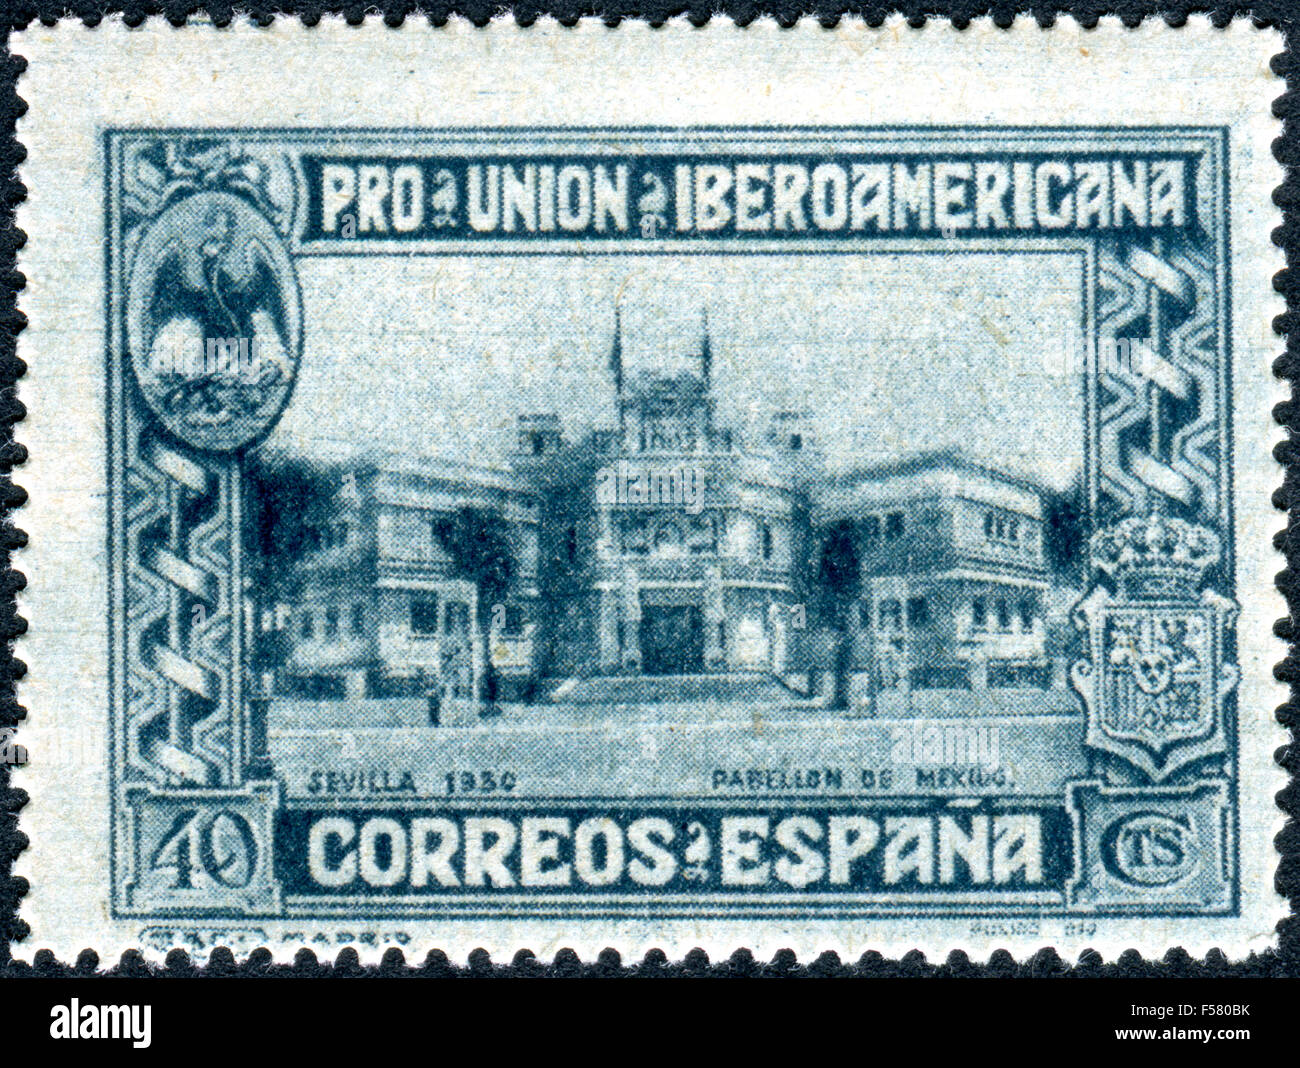 Postage Stamp Printed In Spain Dedicated To The Spanish American Union Exhibition Seville Show Mexico Pavilion Circa 1930